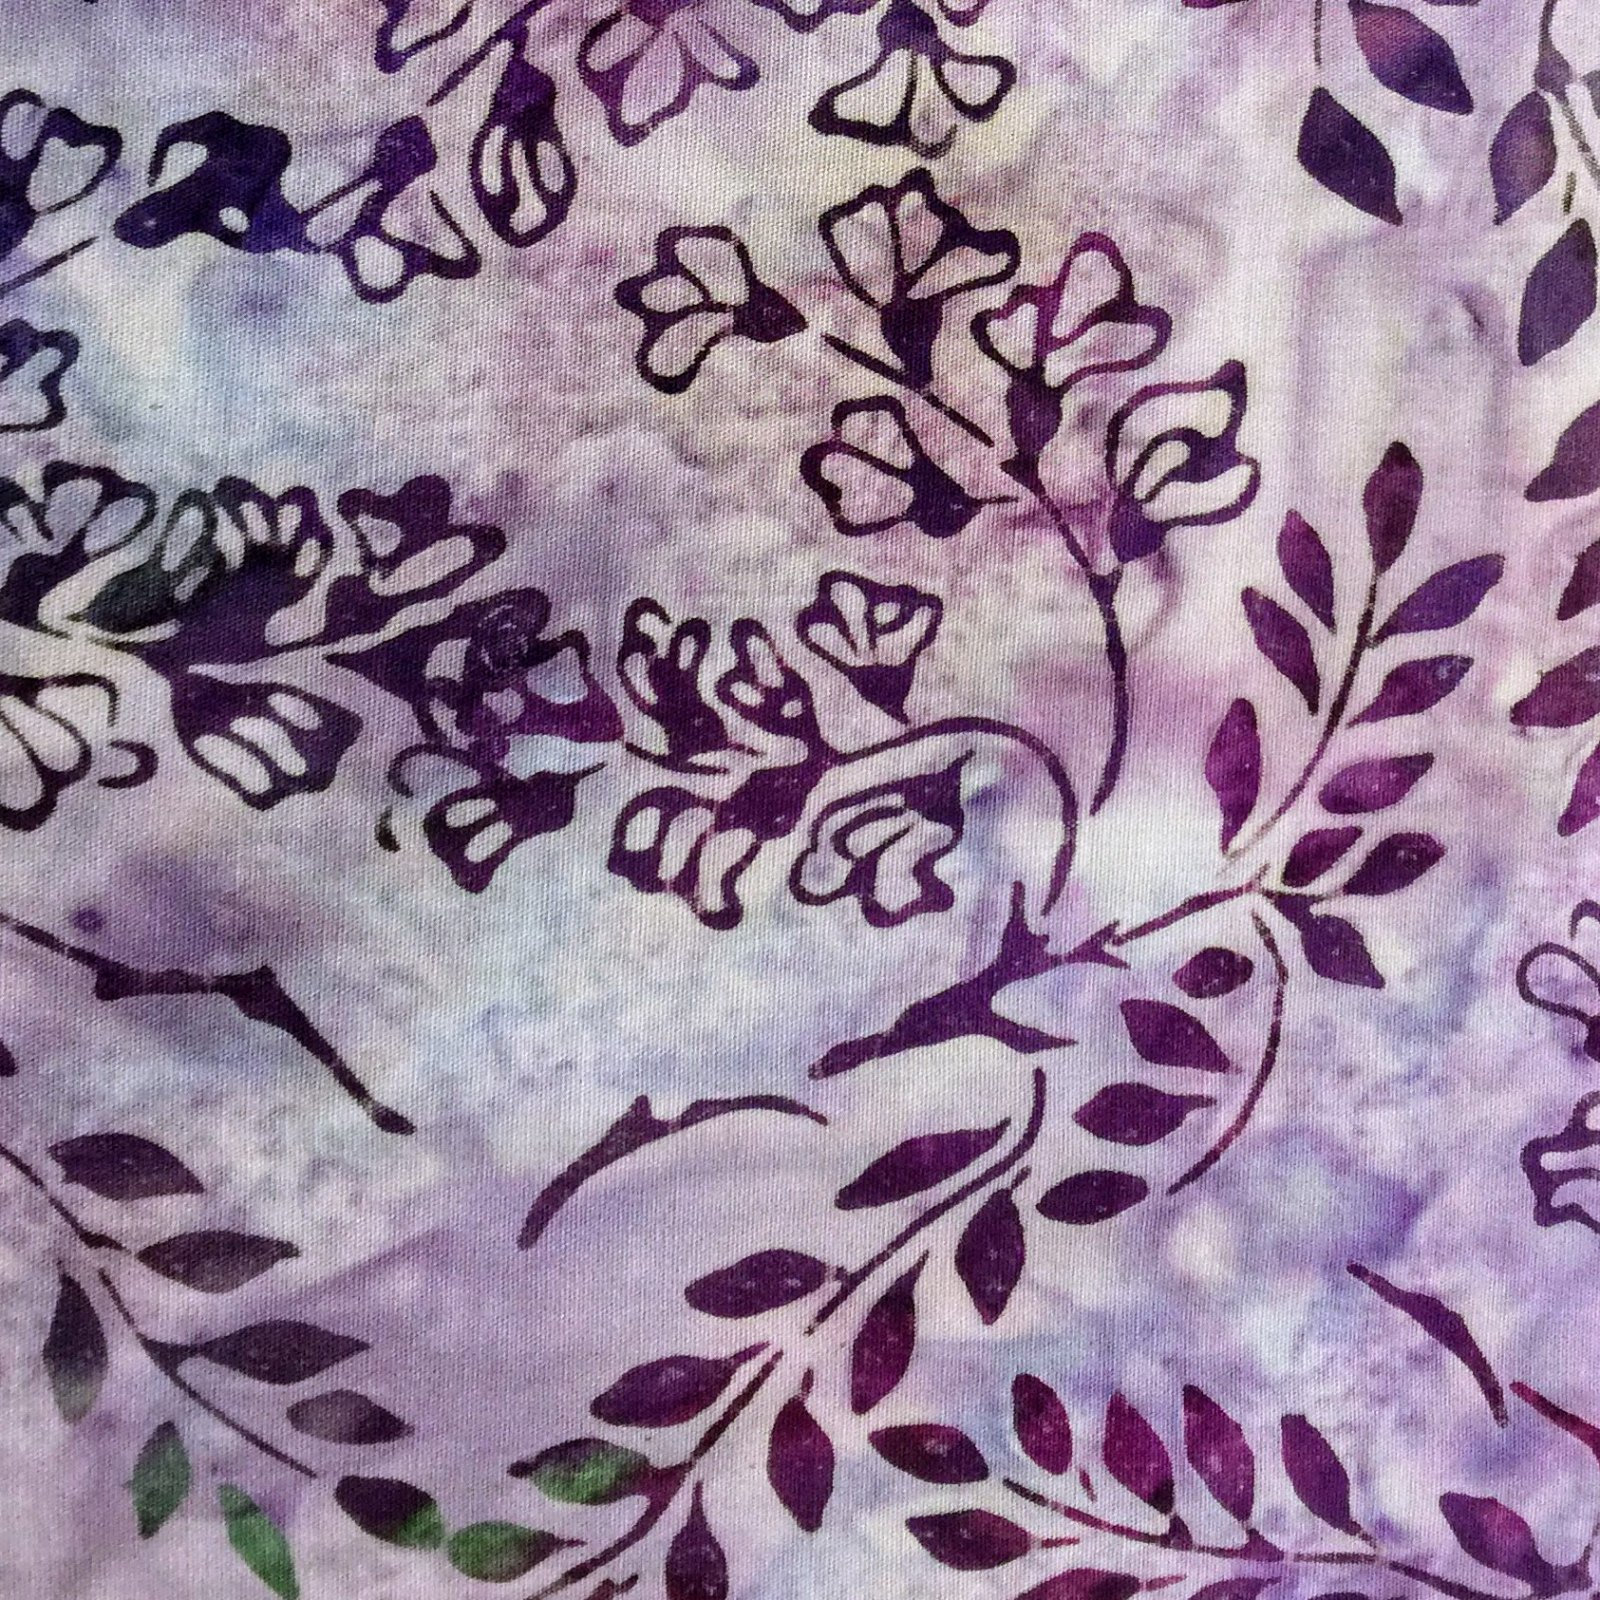 Serendipity 2 Batik Flower Patch - Petunia